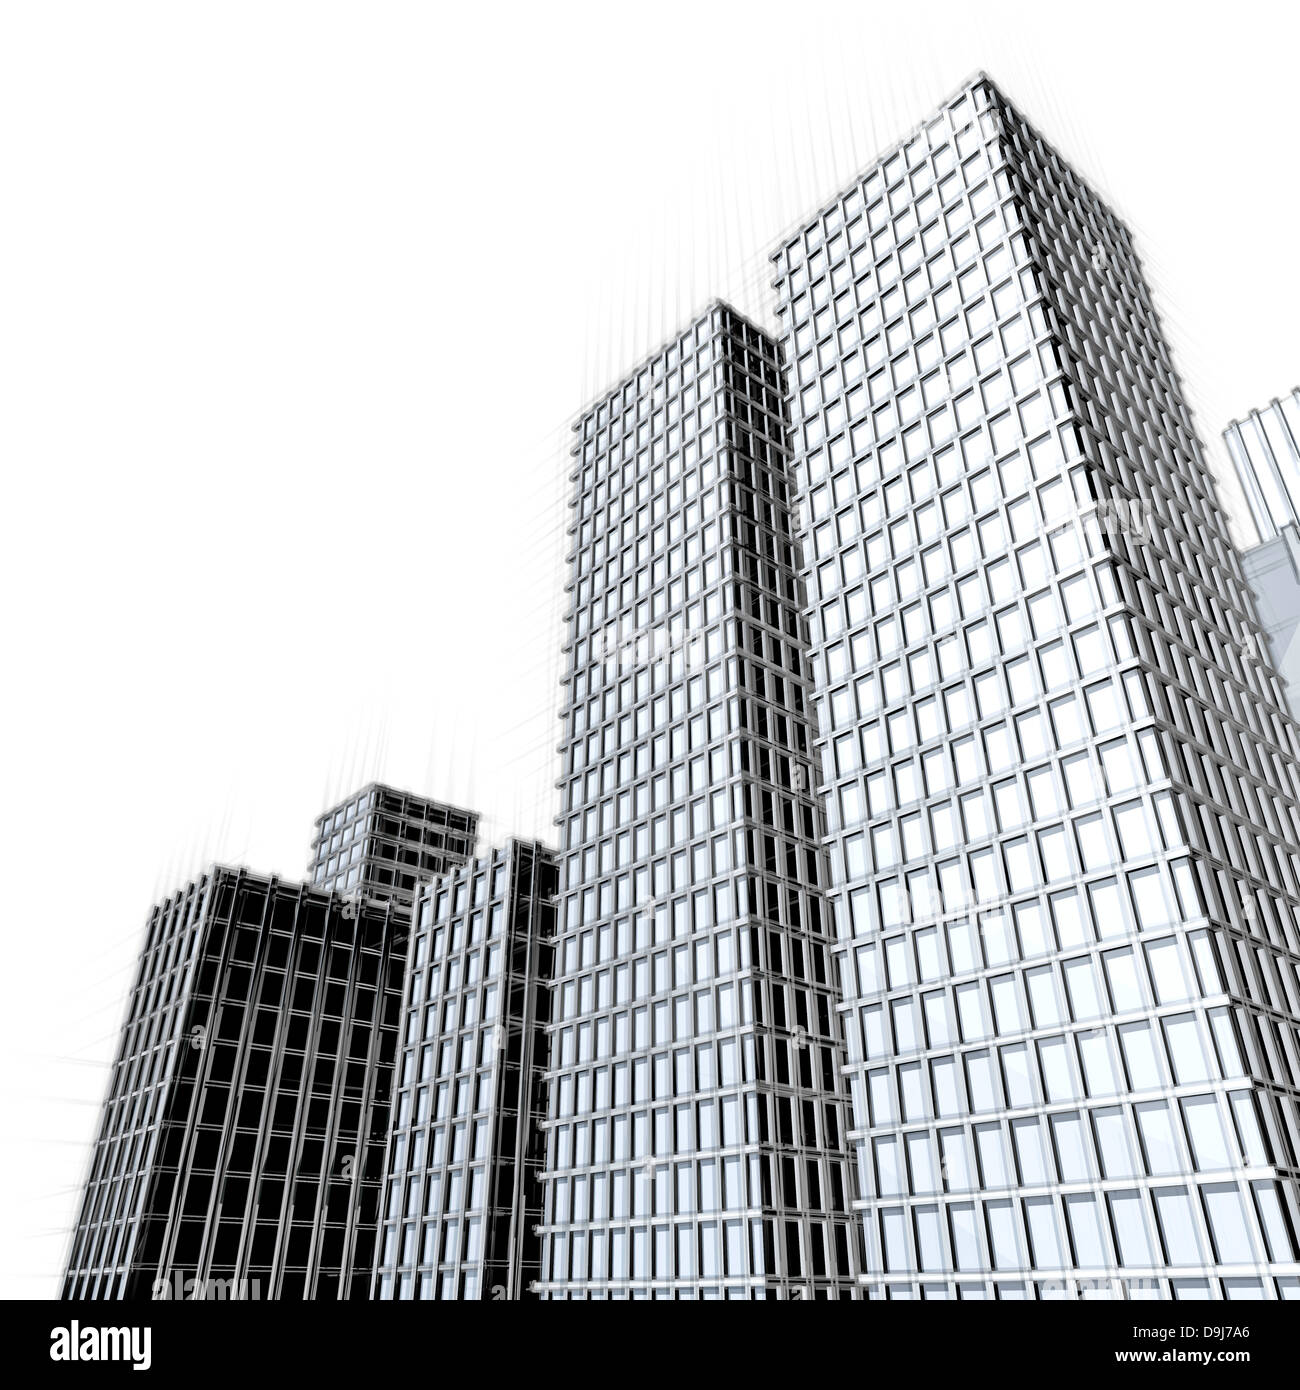 Architecture Drawing Of Large Skyscrapers Downtown